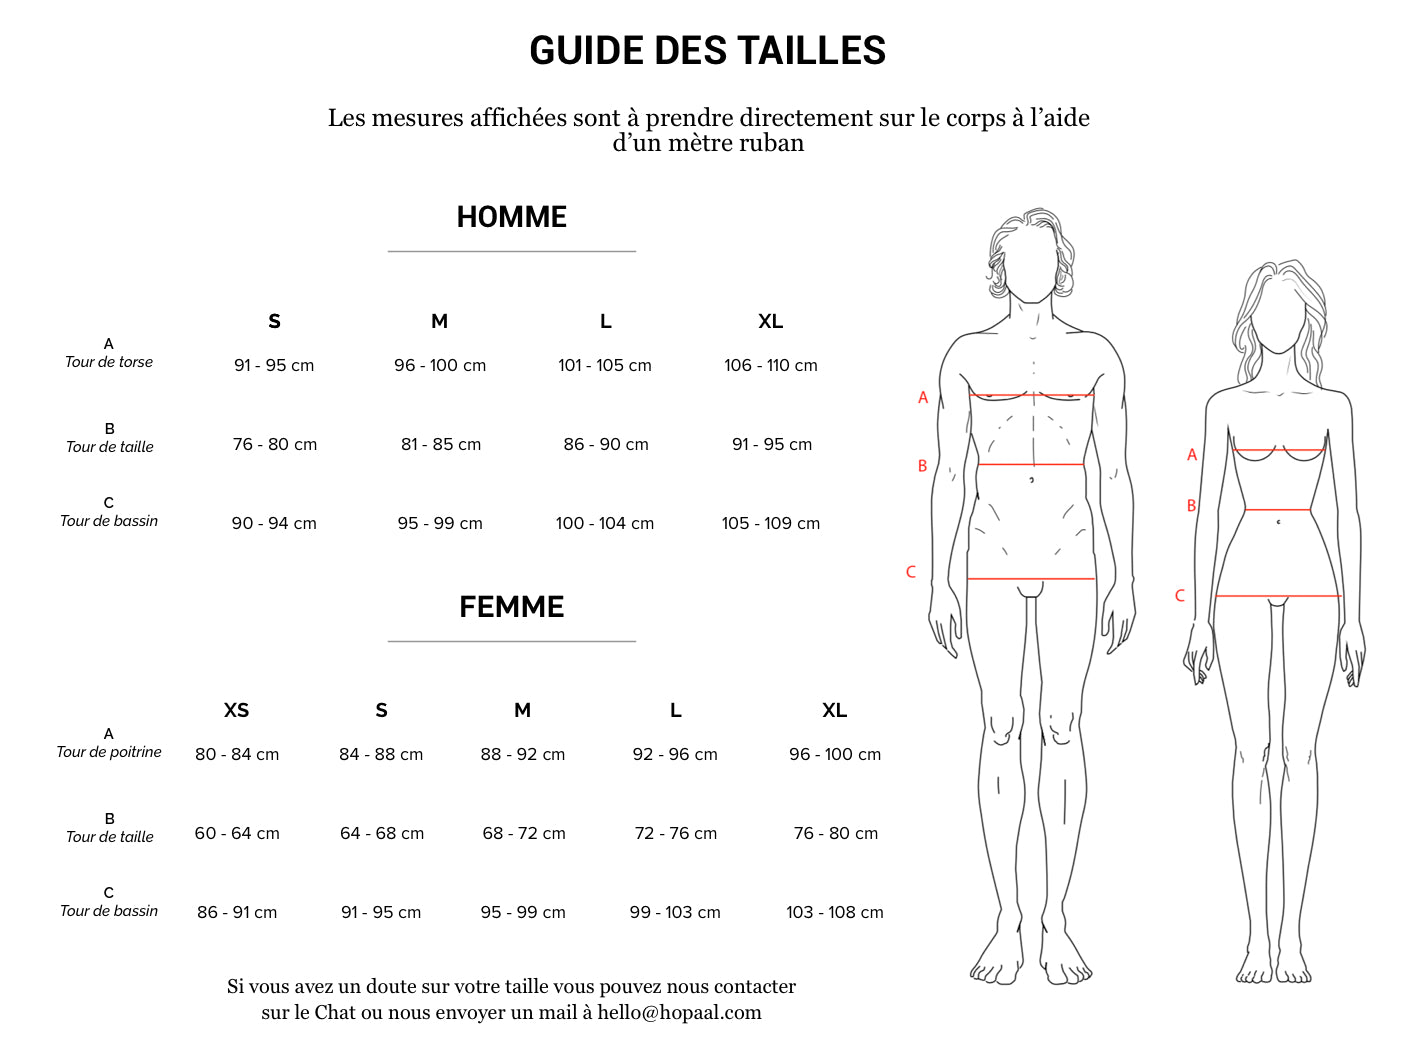 guide des tailles Hopaal